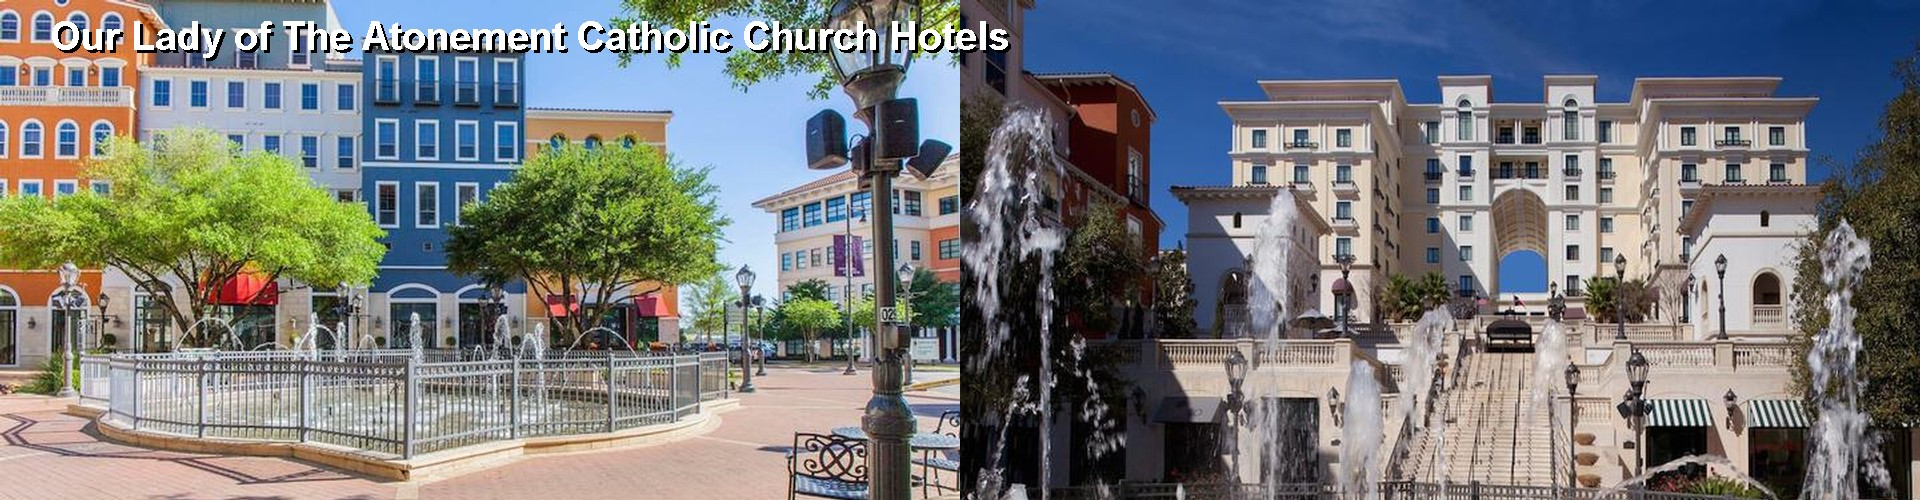 5 Best Hotels Near Our Lady Of The Atonement Catholic Church